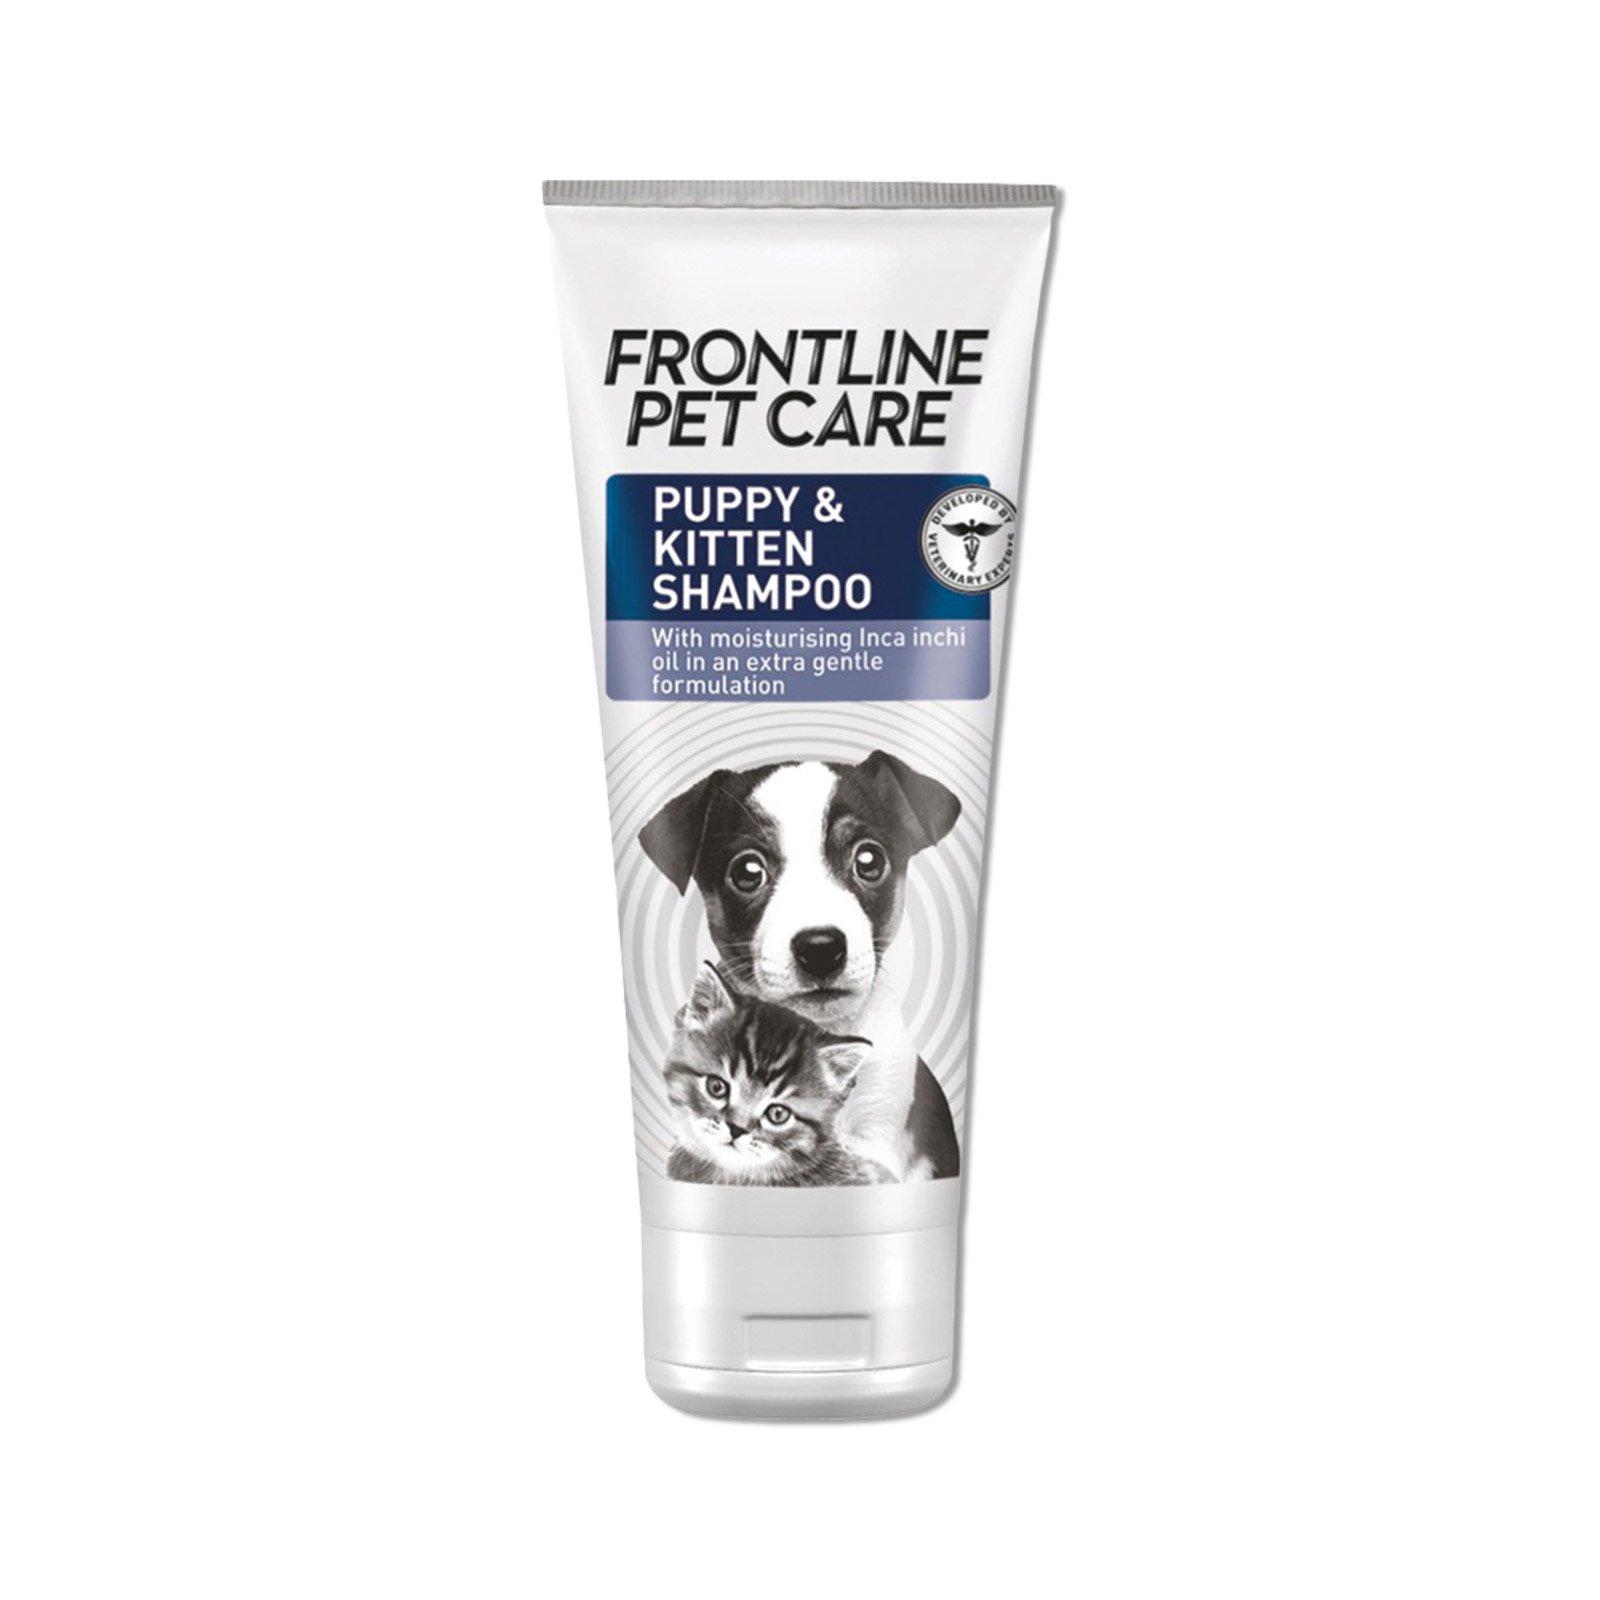 637057635961353232-Frontline-Petcare-Puppy-and-Kitten-Shampoo